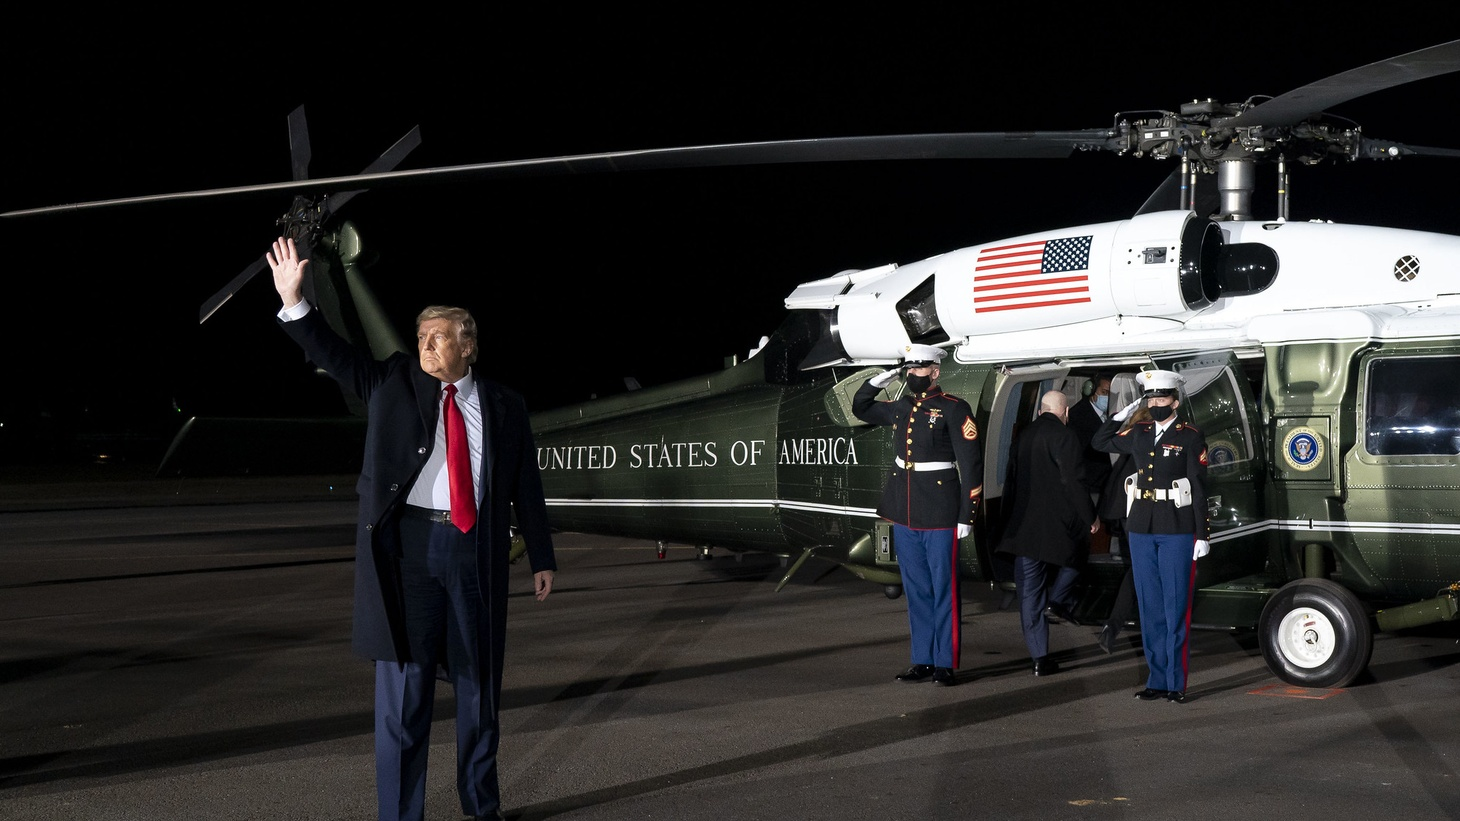 President Donald J. Trump waves as he prepares to board Marine One at Dalton Municipal Airport in Dalton, Ga., Tuesday, Jan. 4, 2021, after addressing a rally at the airport.